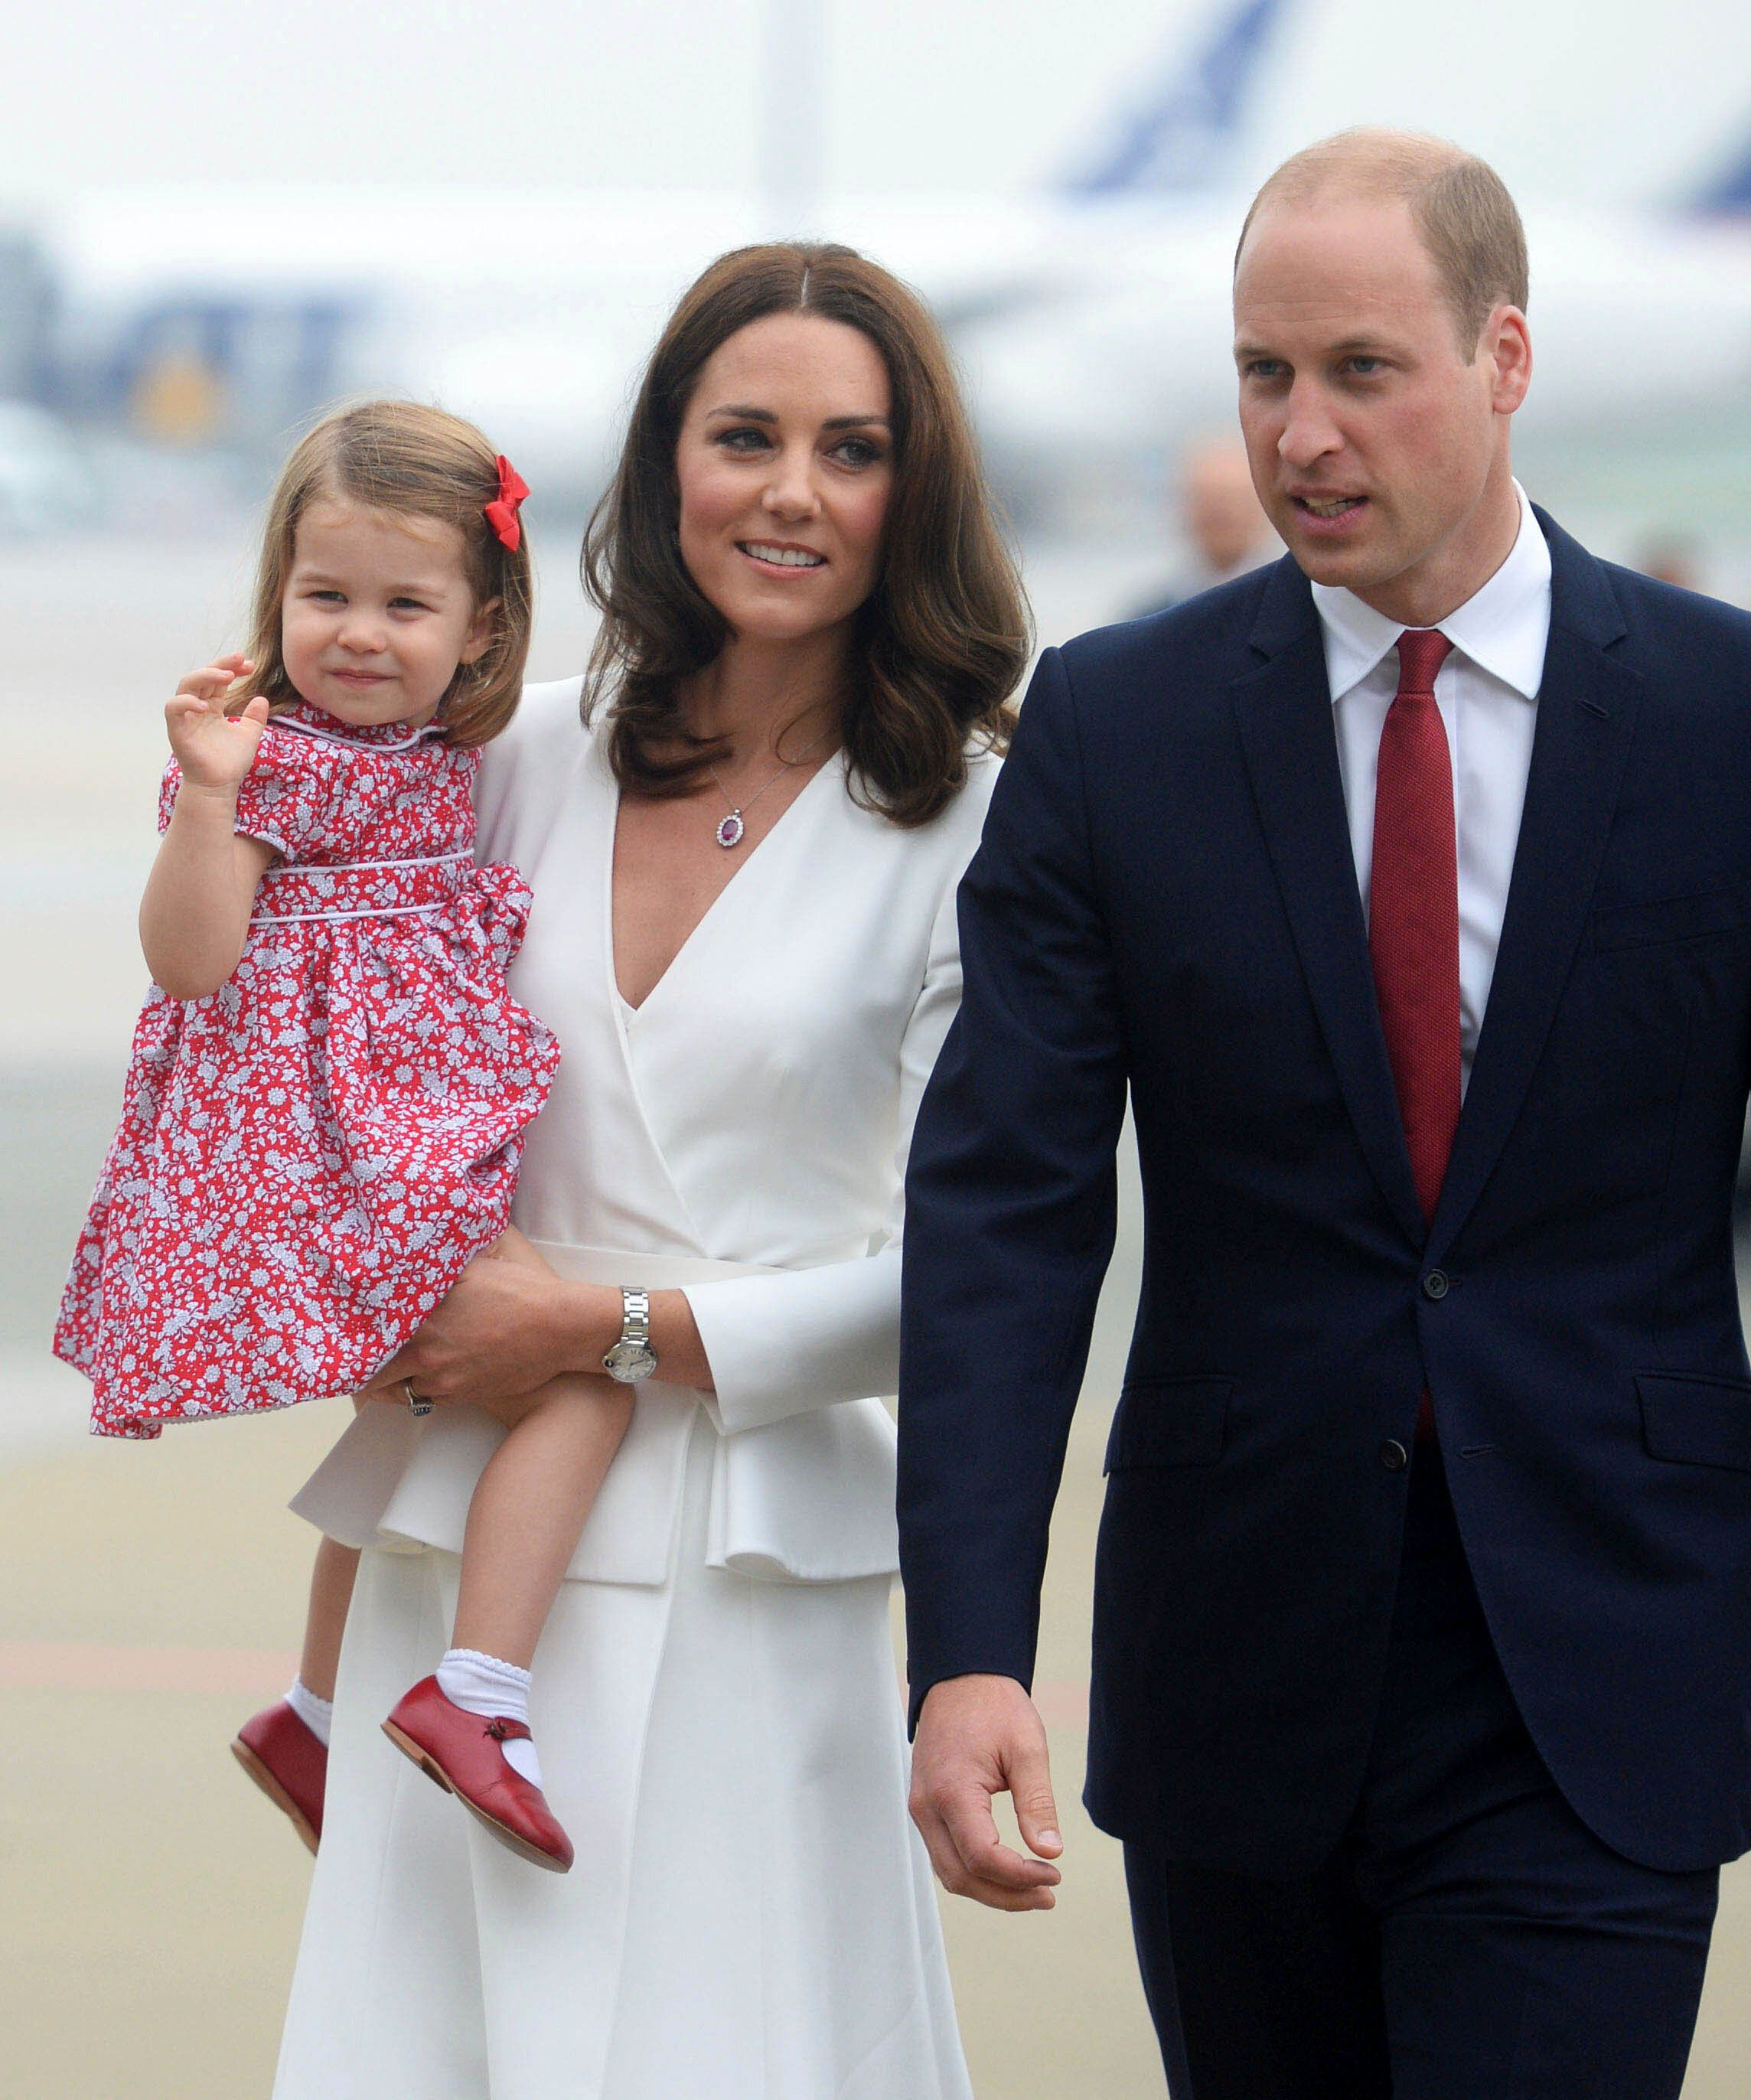 May 2nd, 2019 - Princess Charlotte of Cambridge turns four years old. Princess Charlotte Elizabeth Diana was born on May 2nd 2015 at St. Mary's Hospital in London, England. - File Photo by: zz/KGC-178/STAR MAX/IPx 2017 7/17/17 Prince William, Catherine, The Duchess of Cambridge with their children, Princess Charlotte and Prince George tour Poland and Germany between the 17th and 21st of July. This visit is at the request of The Foreign and Commonwealth Office, and will be Their Royal Highnesses' first official joint visit to Poland and Germany. The Duke made an official visit to Germany last summer.